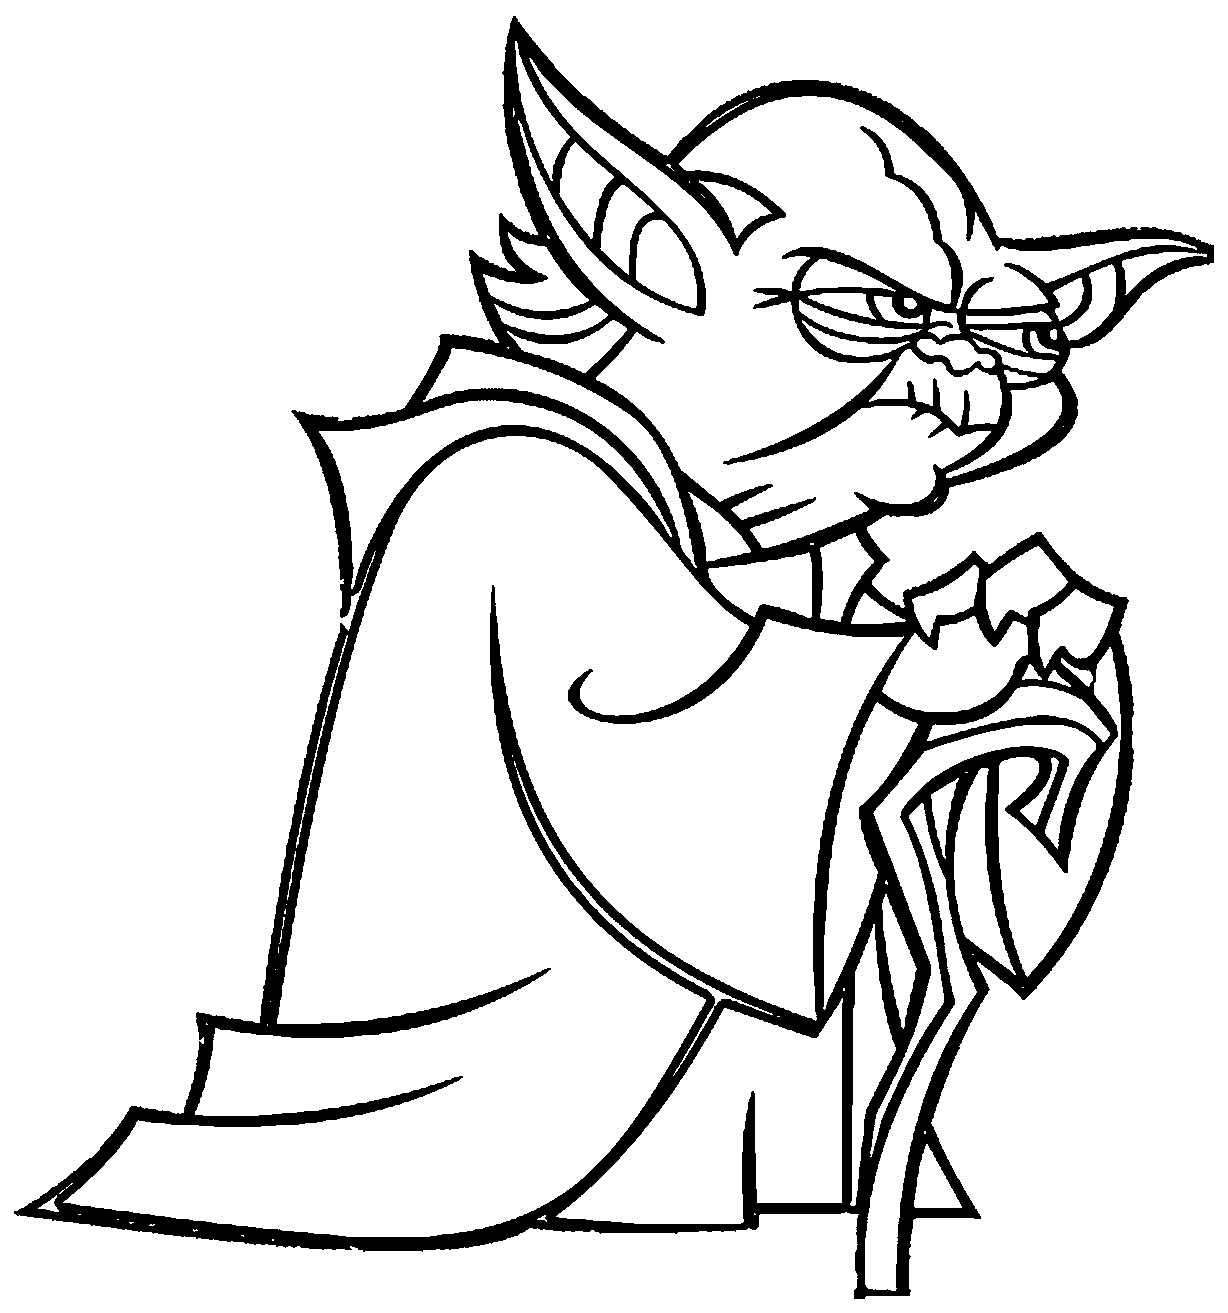 Yoda From Star Wars Free Coloring Page Kids Movies Arresting Pages Collection Of New Coloring Pages Star Wars Printable